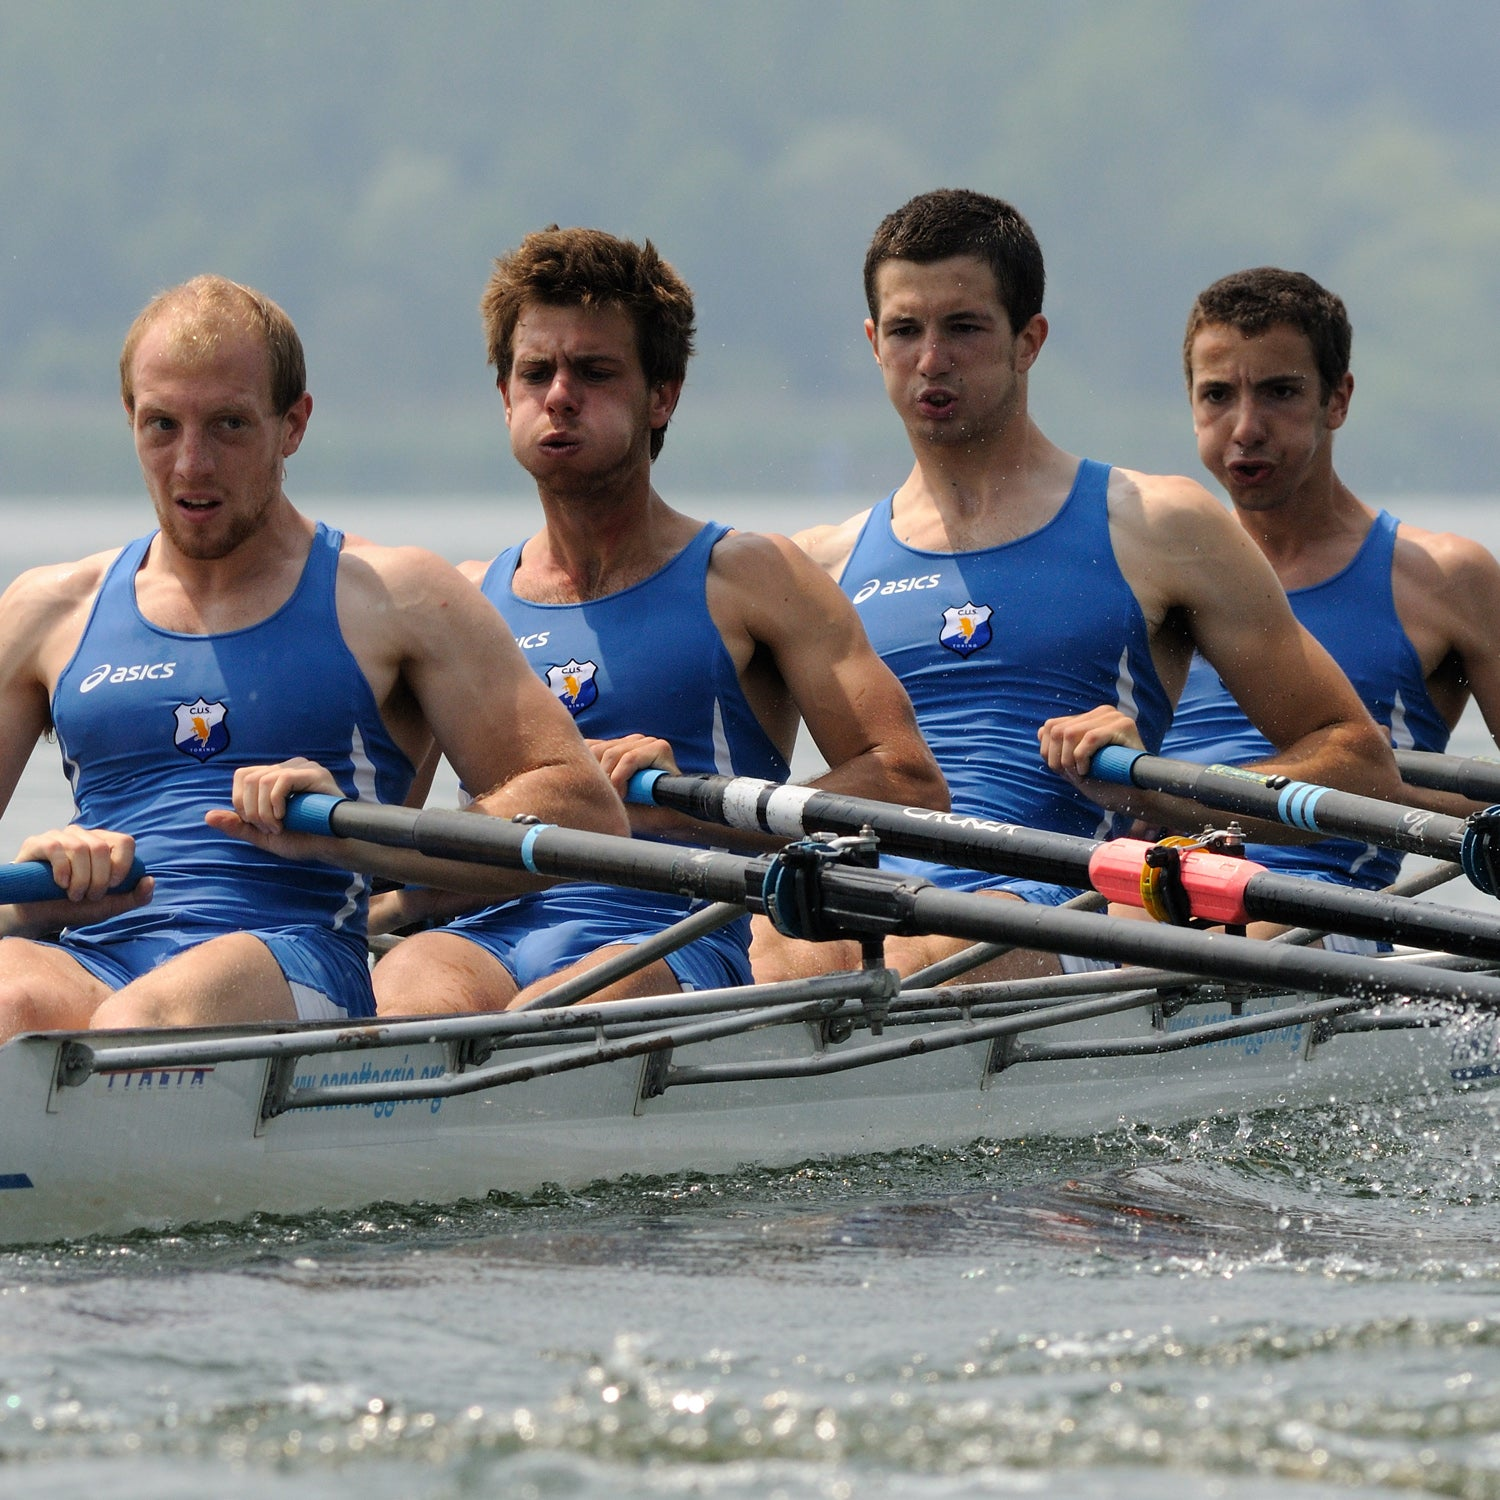 How Does An Olympic Rower Train?